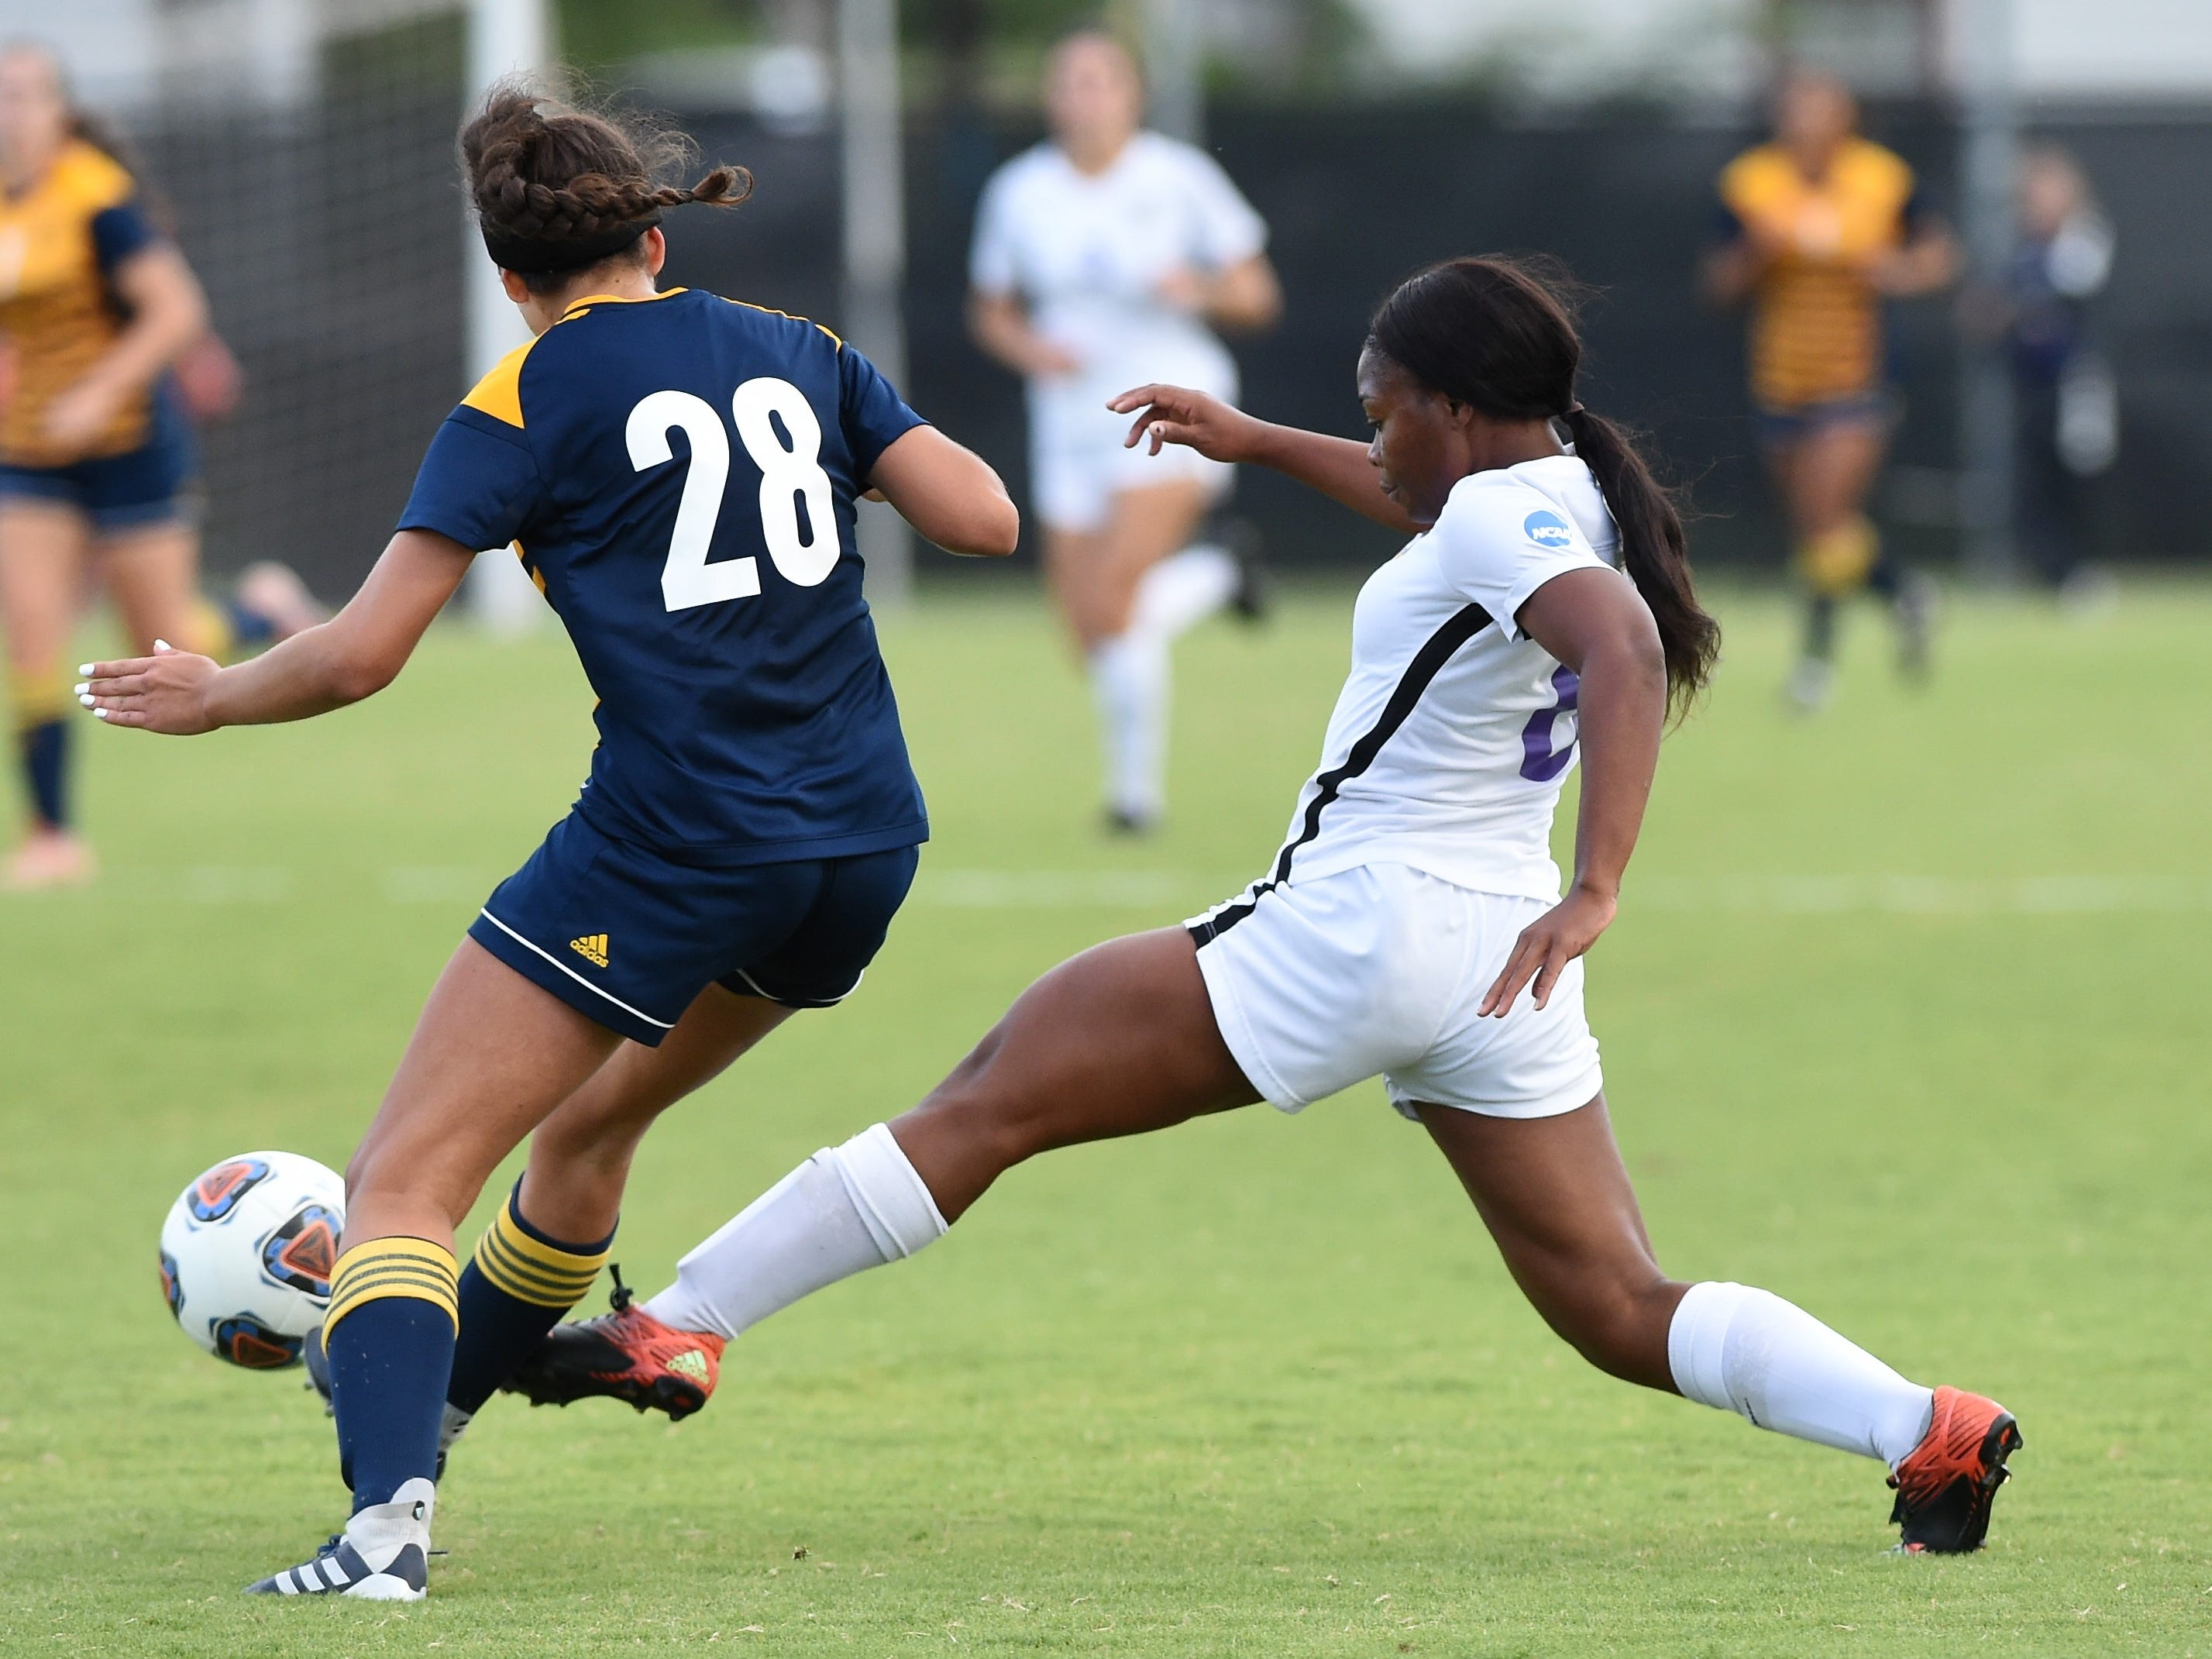 Hardin-Simmons forward Finda Kollie (6) reaches for the ball against Howard Payne's Leah Gordish (28) at the HSU Soccer Complex on Thursday, Oct. 11, 2018. The Cowgirls won 4-1.